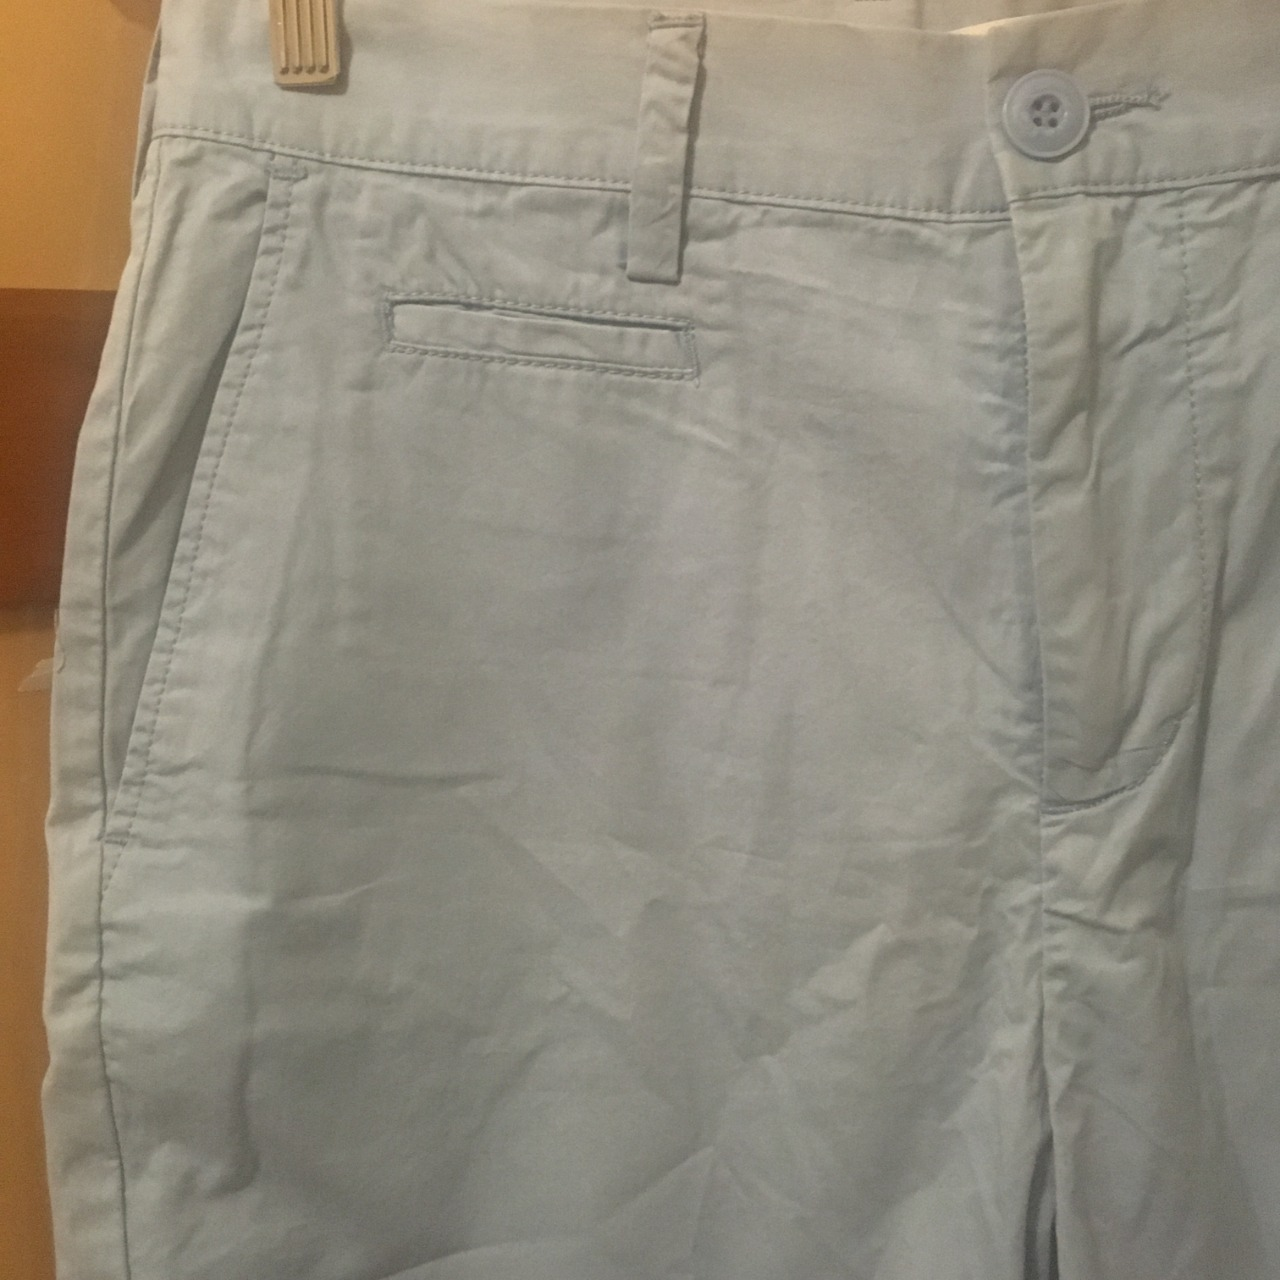 Country Road Mens  Size 32 Light Blue Twill Shorts BNWT